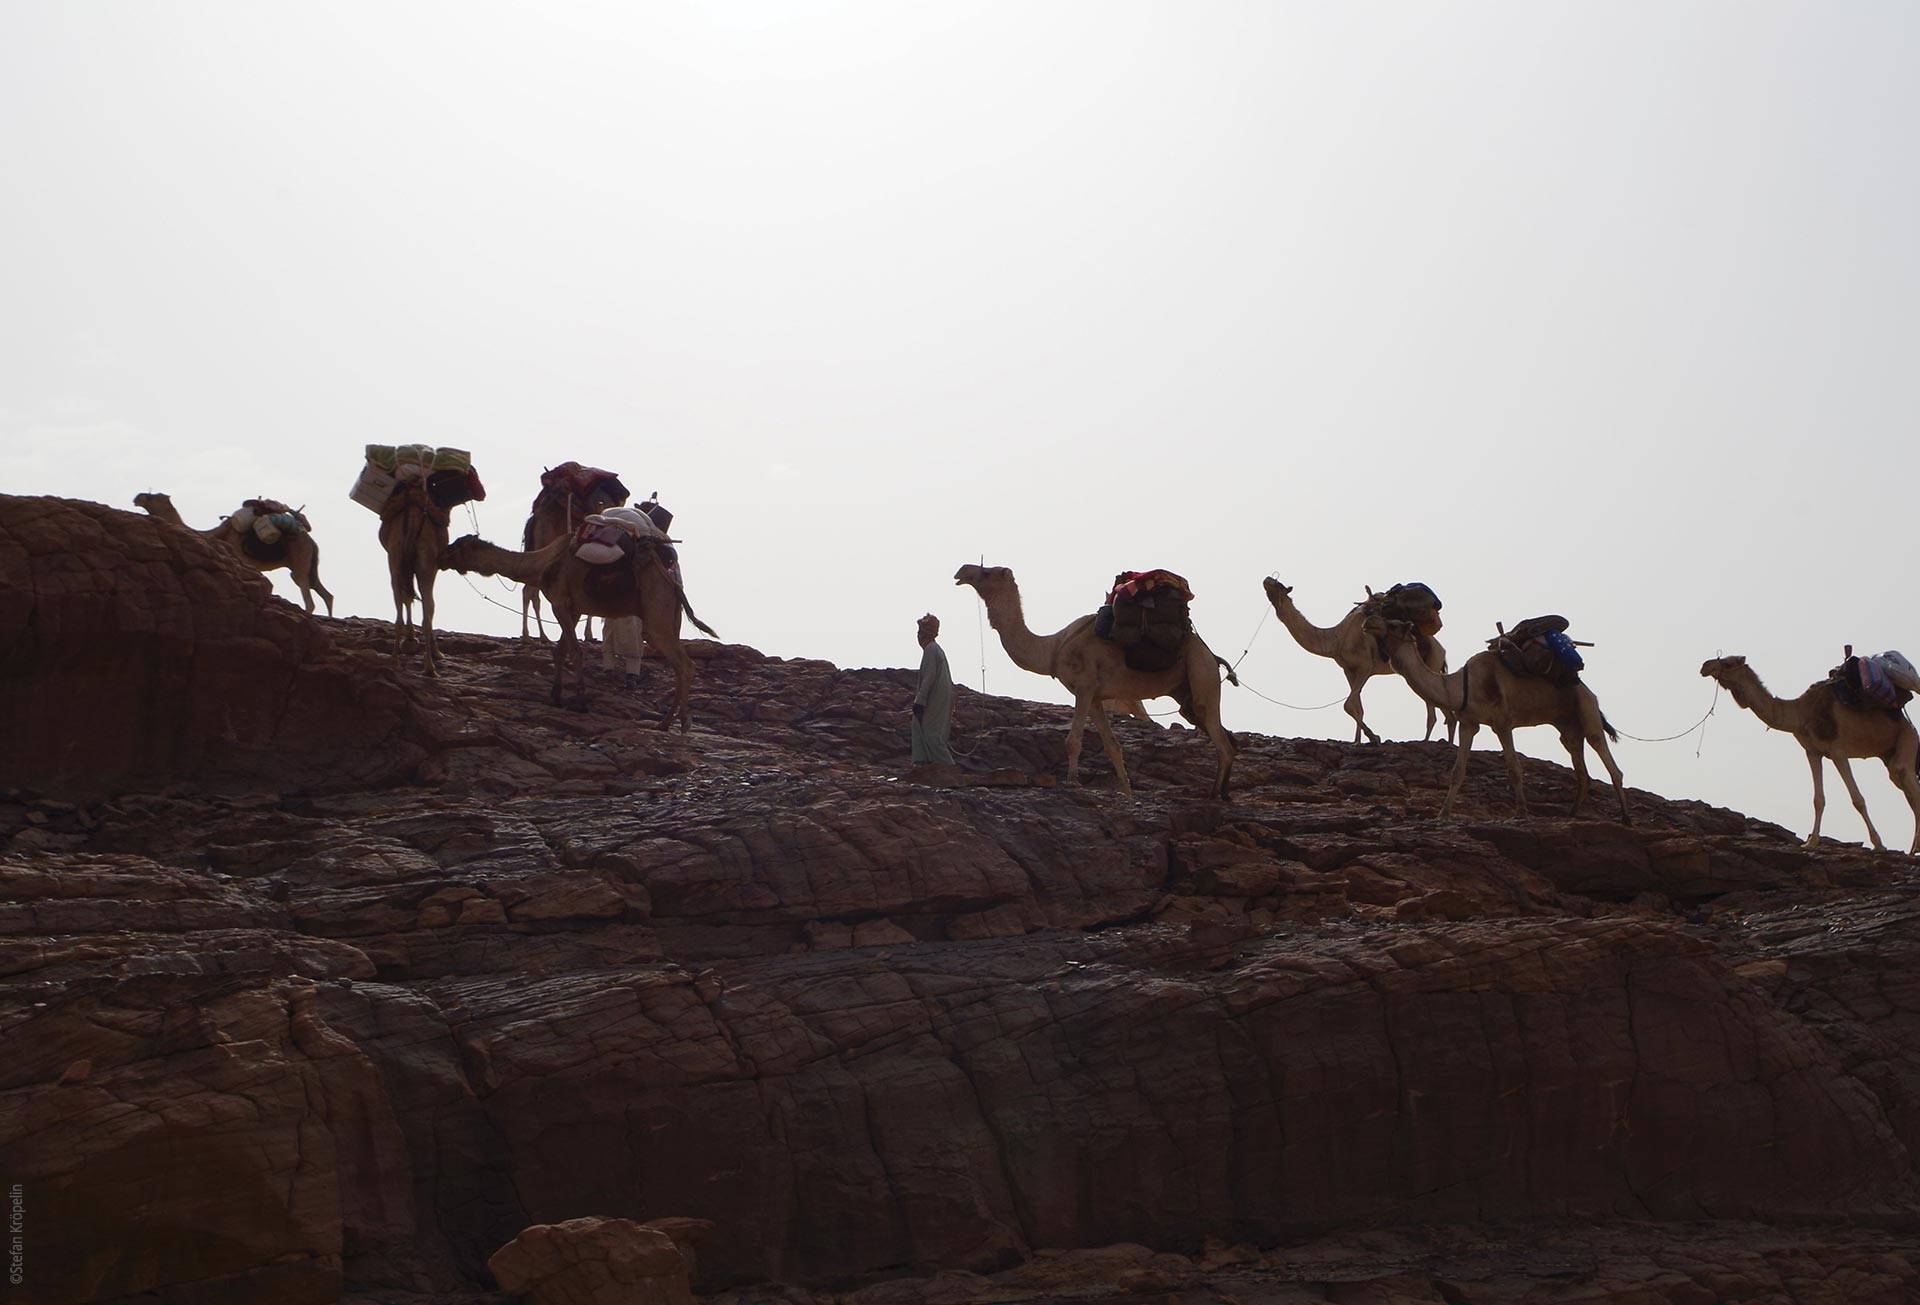 The Tibesti Mountains, expedition, camels as pack animals, Explore Chad